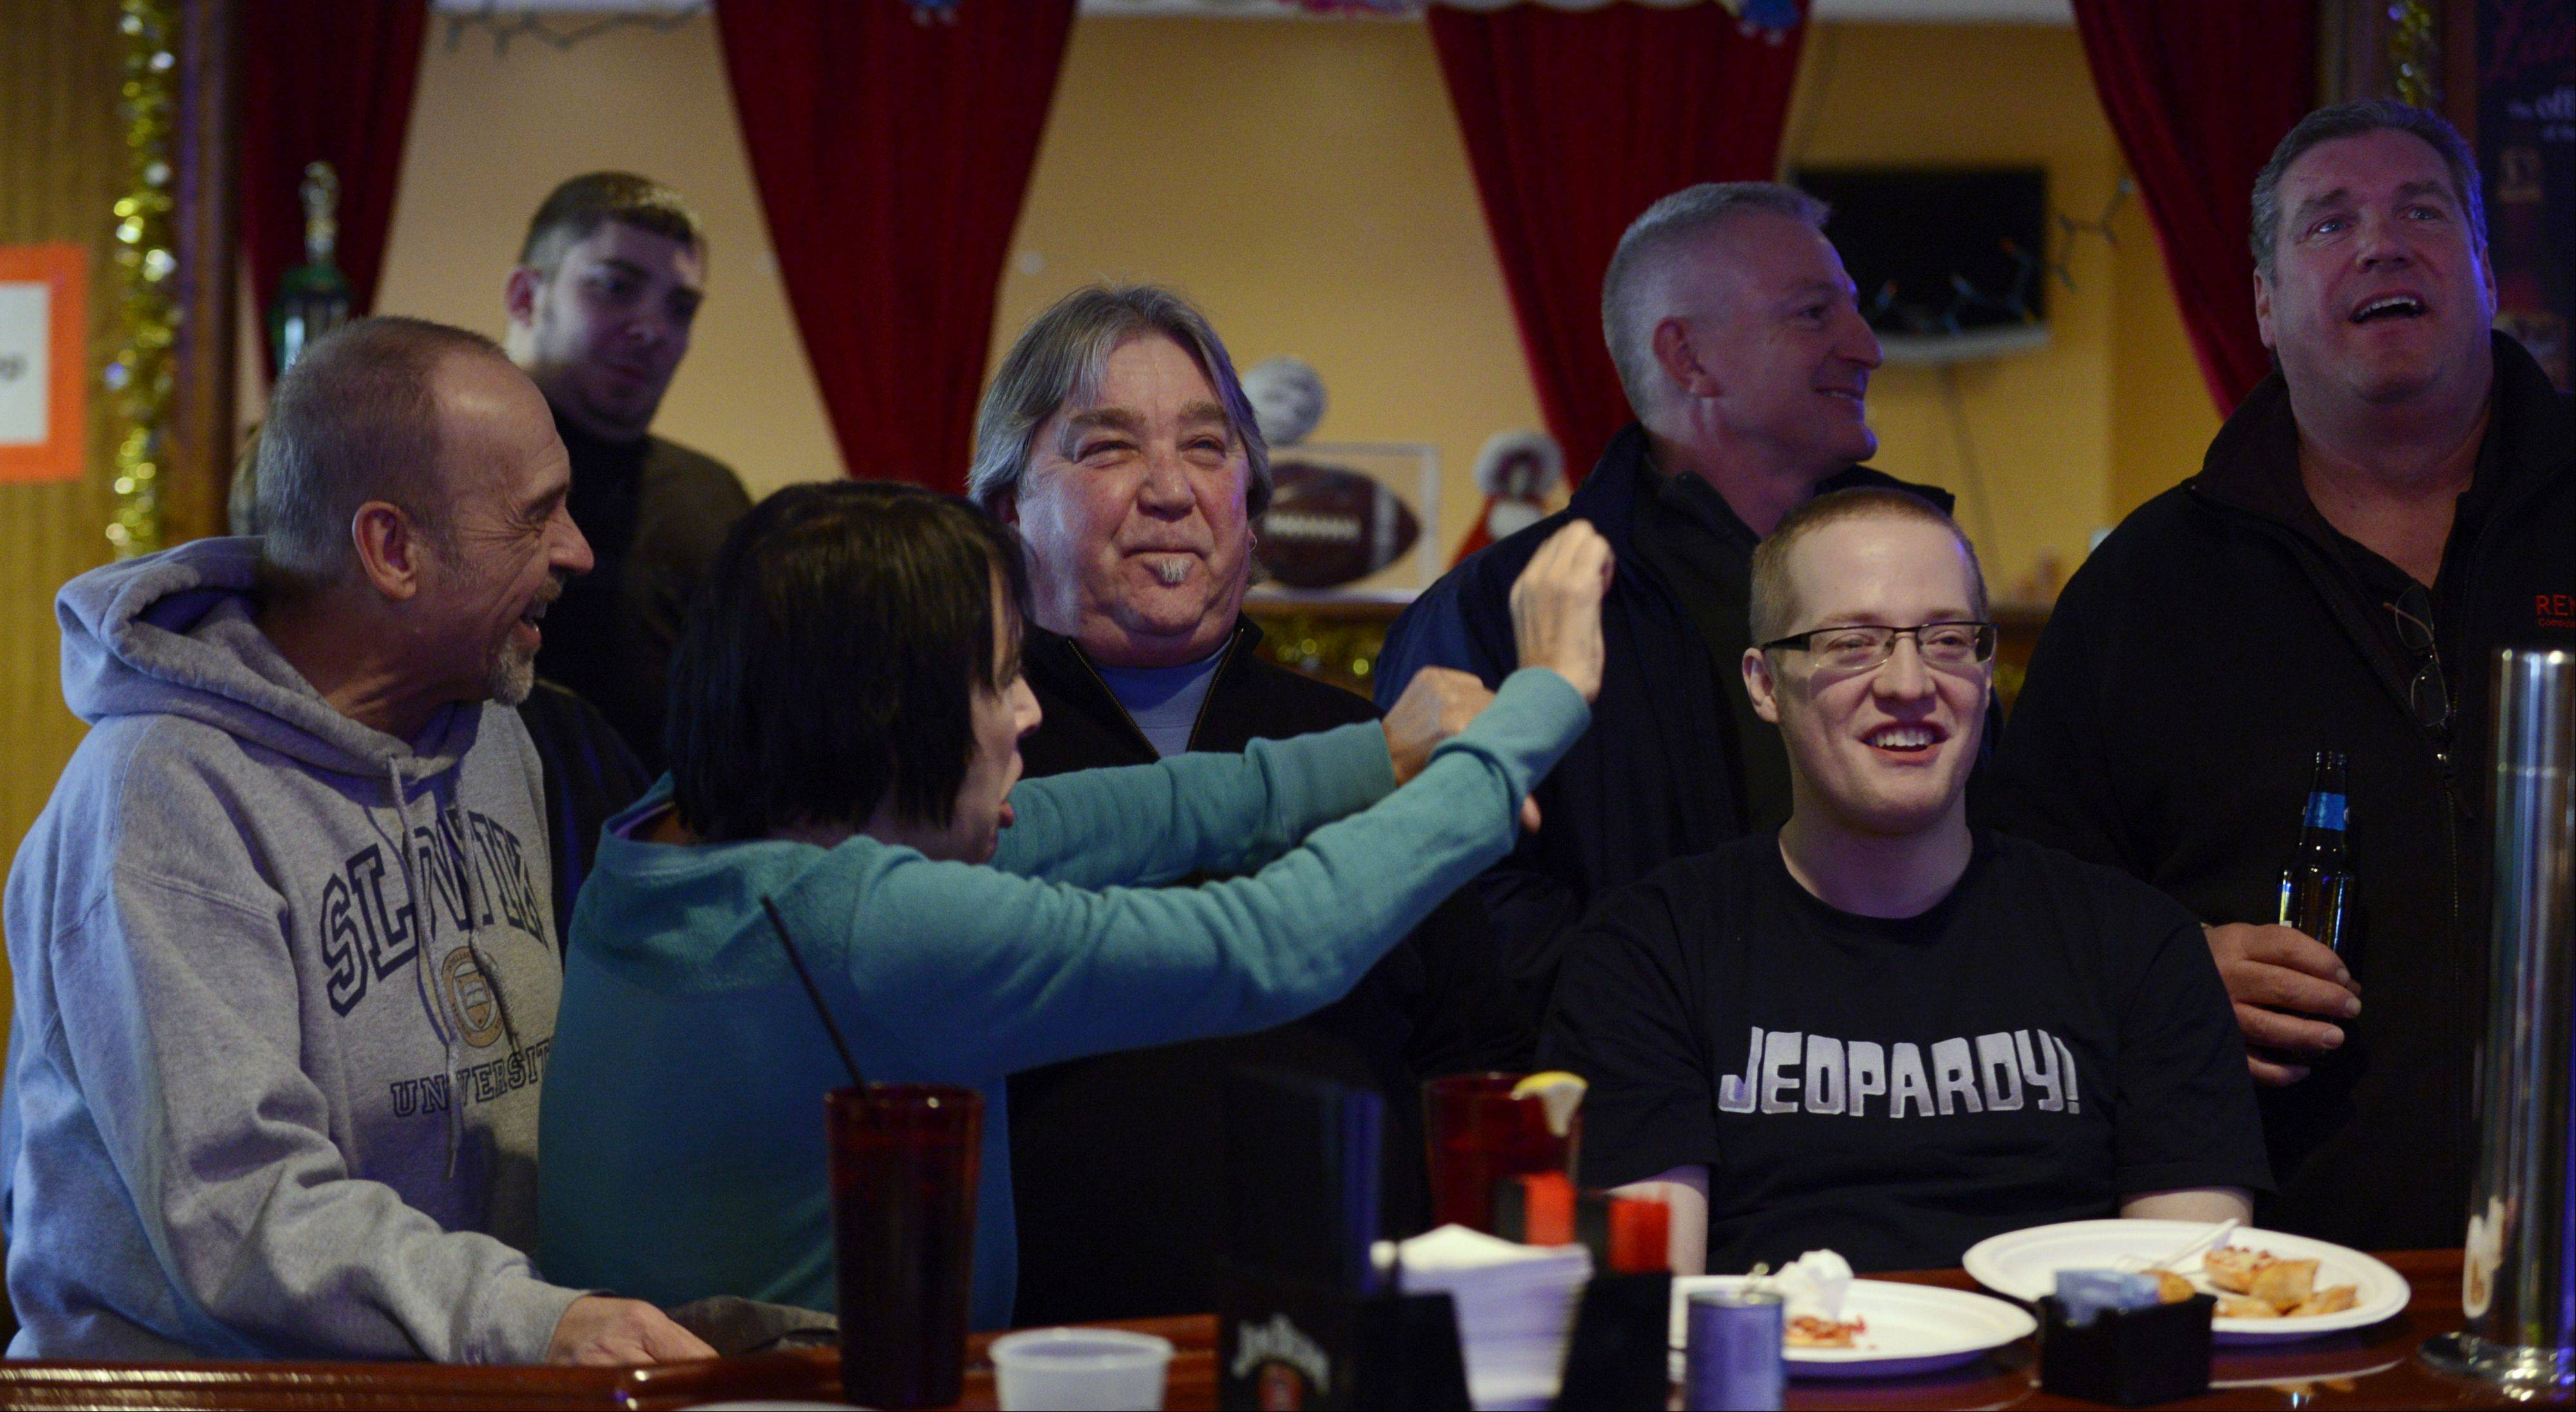 "Though he did win and his run will continue at least one more show, Jerry Slowik of Arlington Heights, front right, takes some gentle teasing from his dad, Jerry, left, and mom, Debbie, after missing a question on his ""Jeopardy!"" appearance. He watched his latest appearance on the program with friends New Year's Eve at Eddie's Restaurant and Lounge in Arlington Heights."